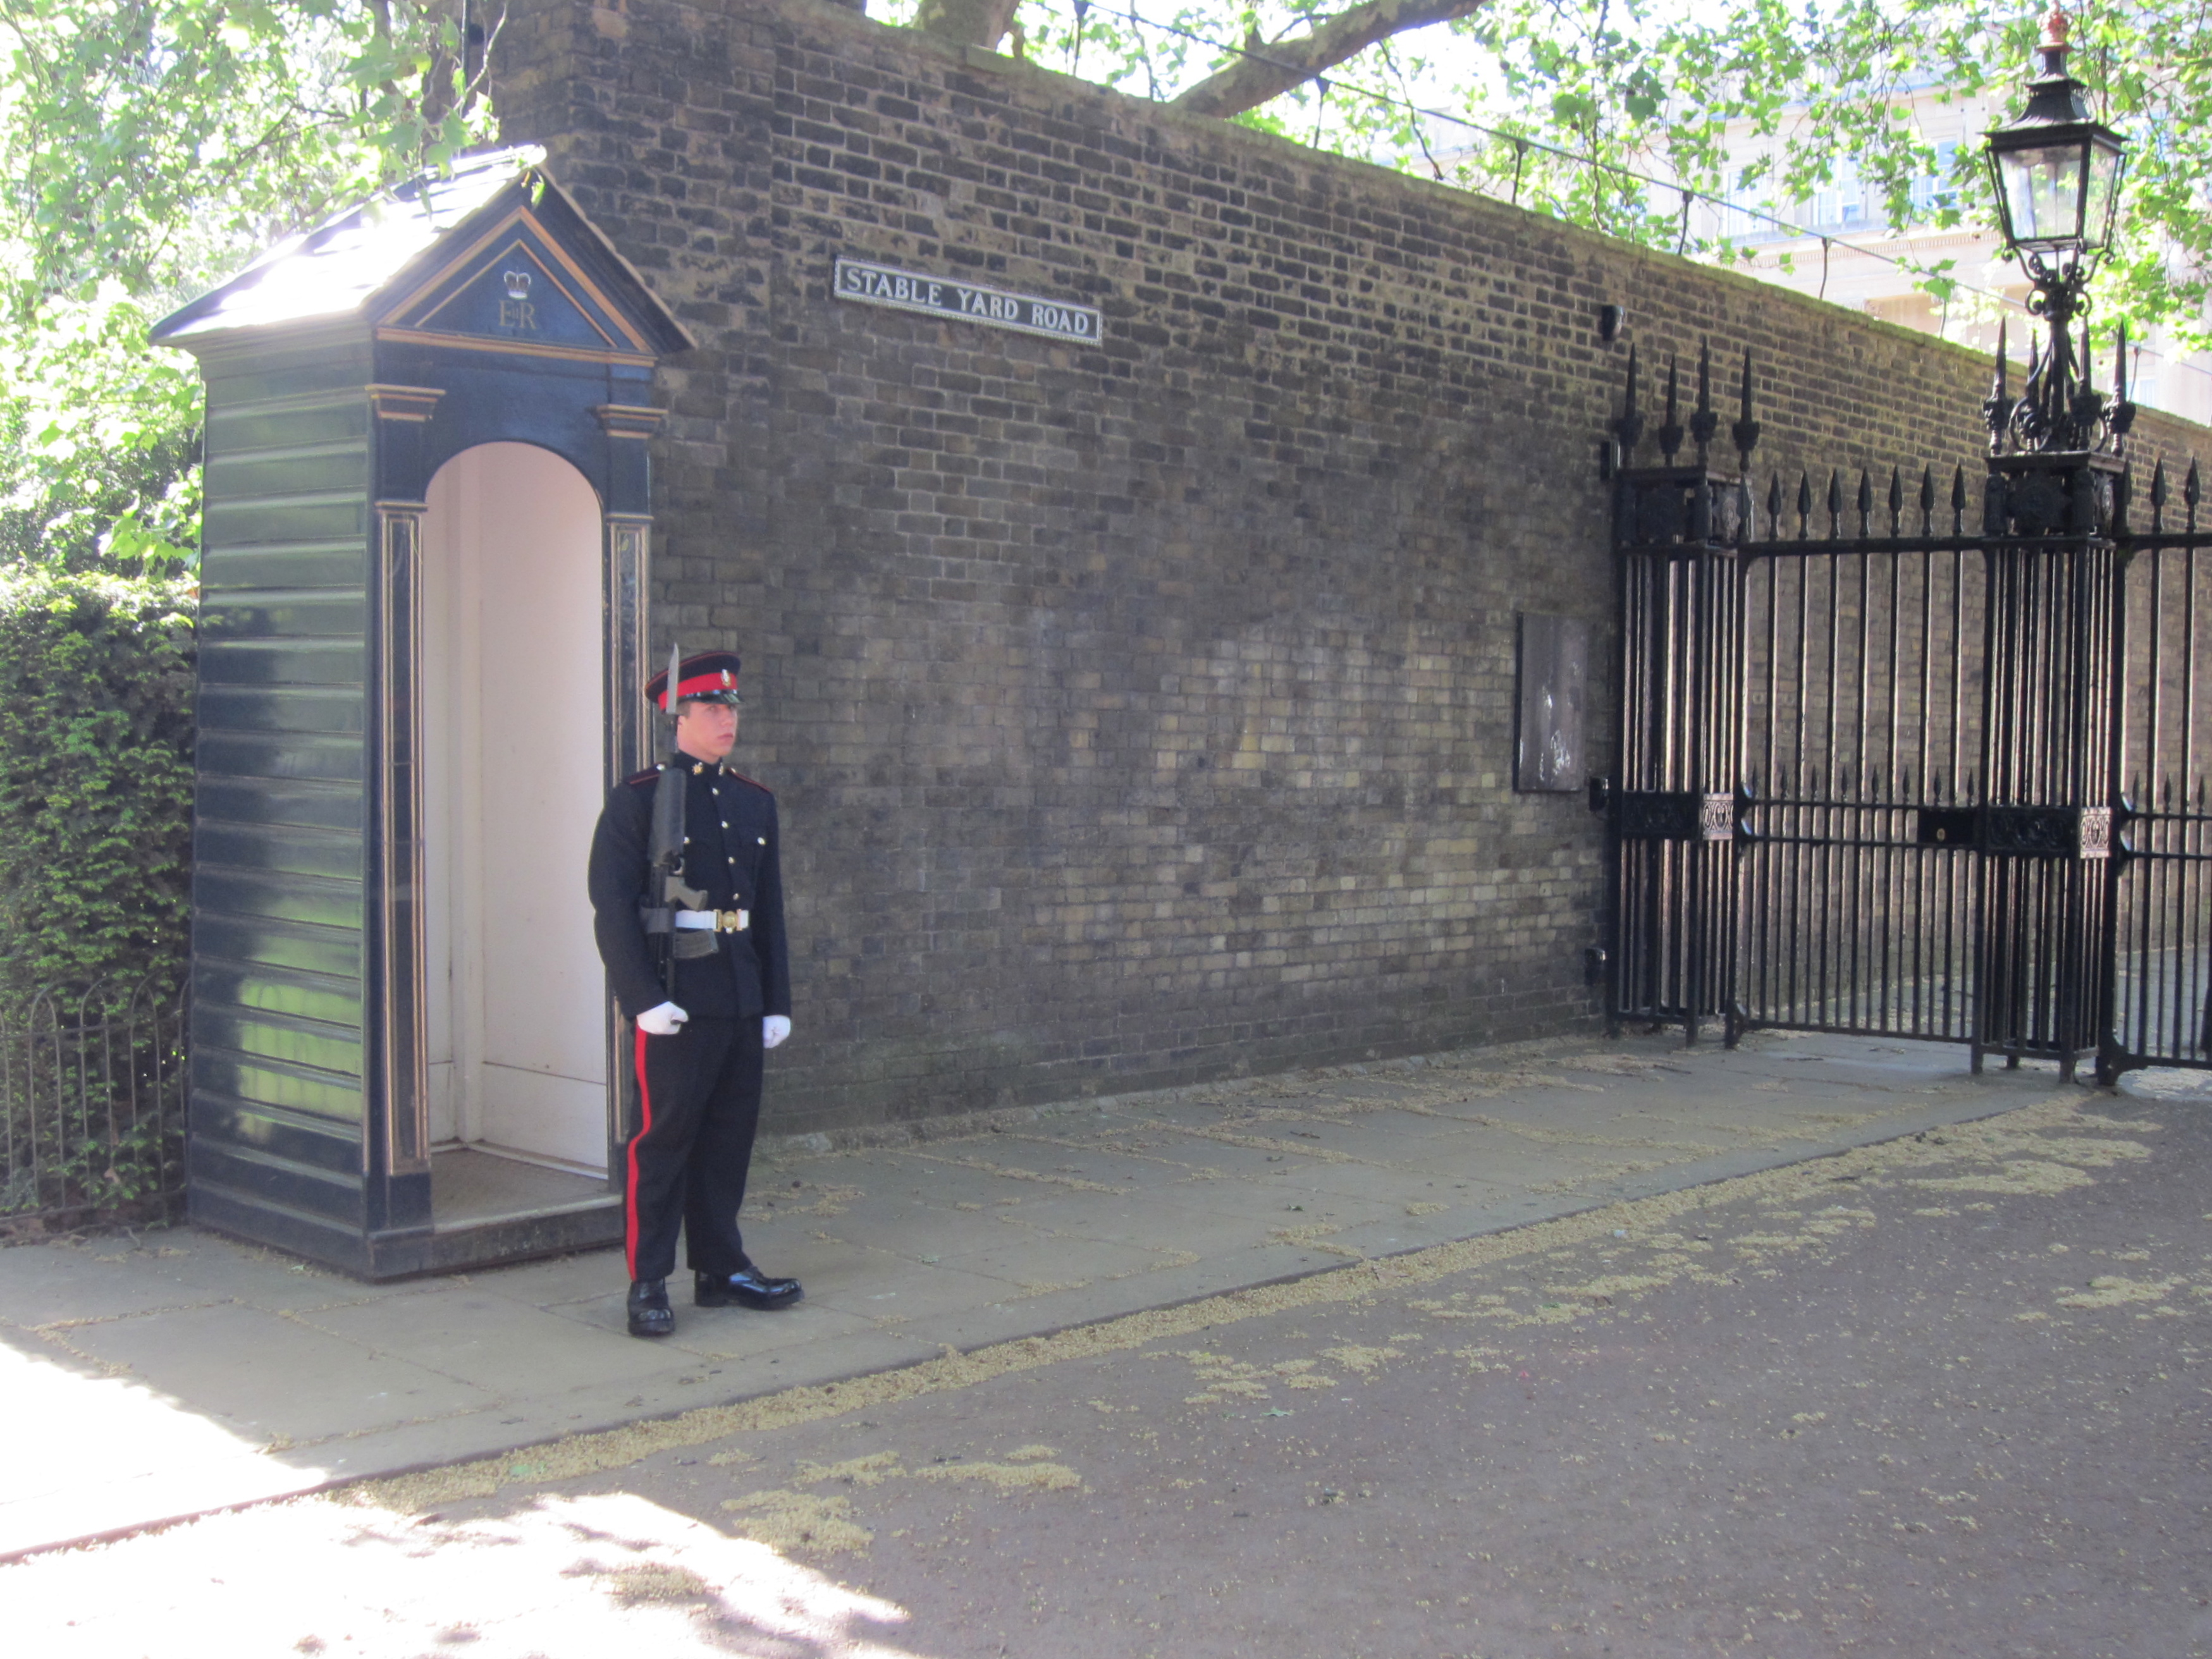 Stable walk guard, London